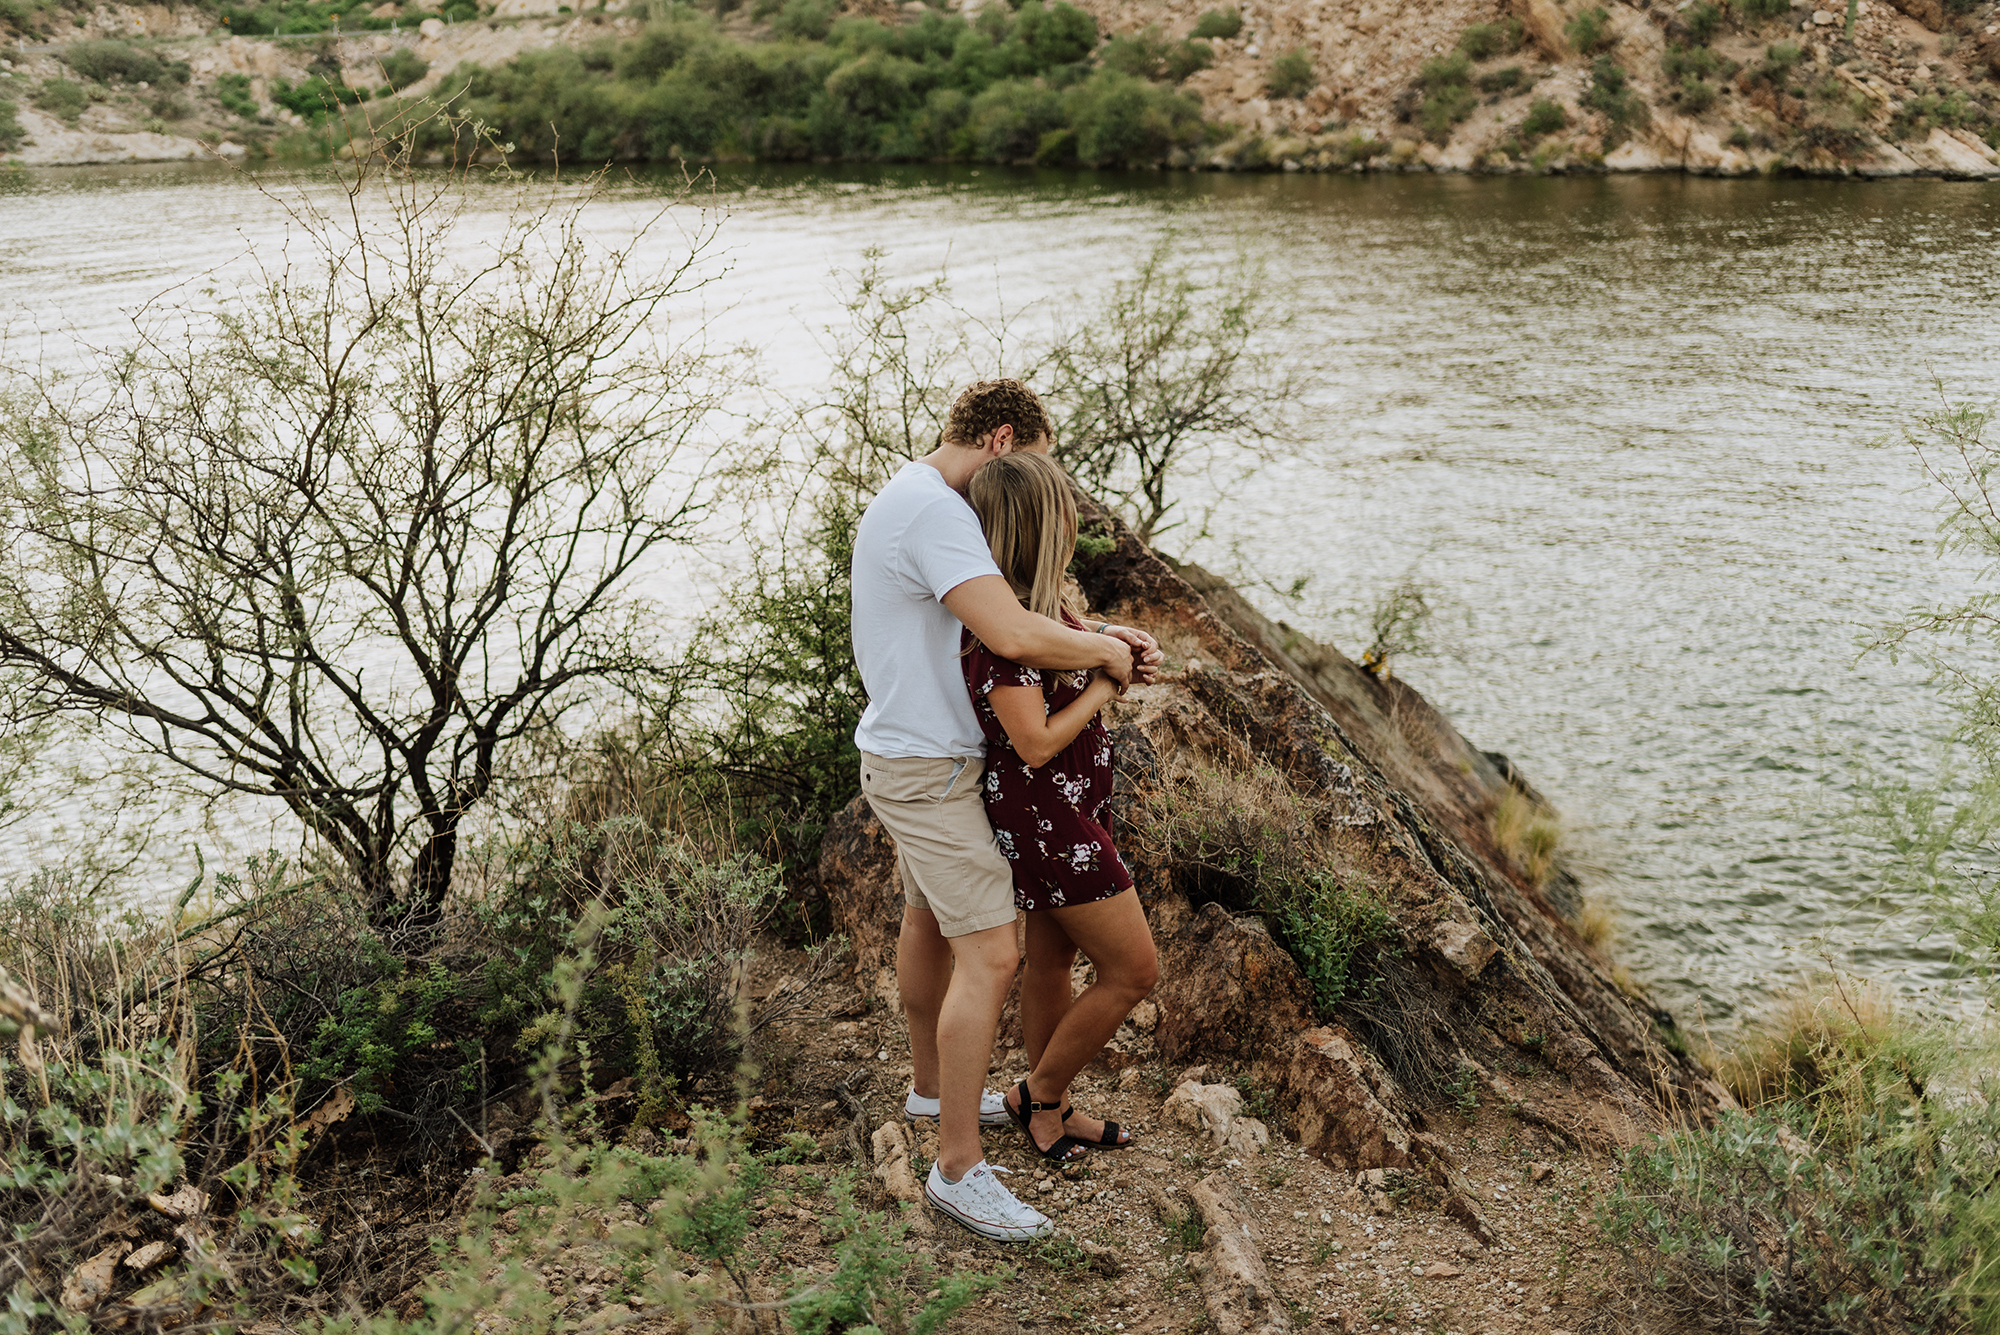 Engagement photo inspiration at Canyon Lake in Arizona.